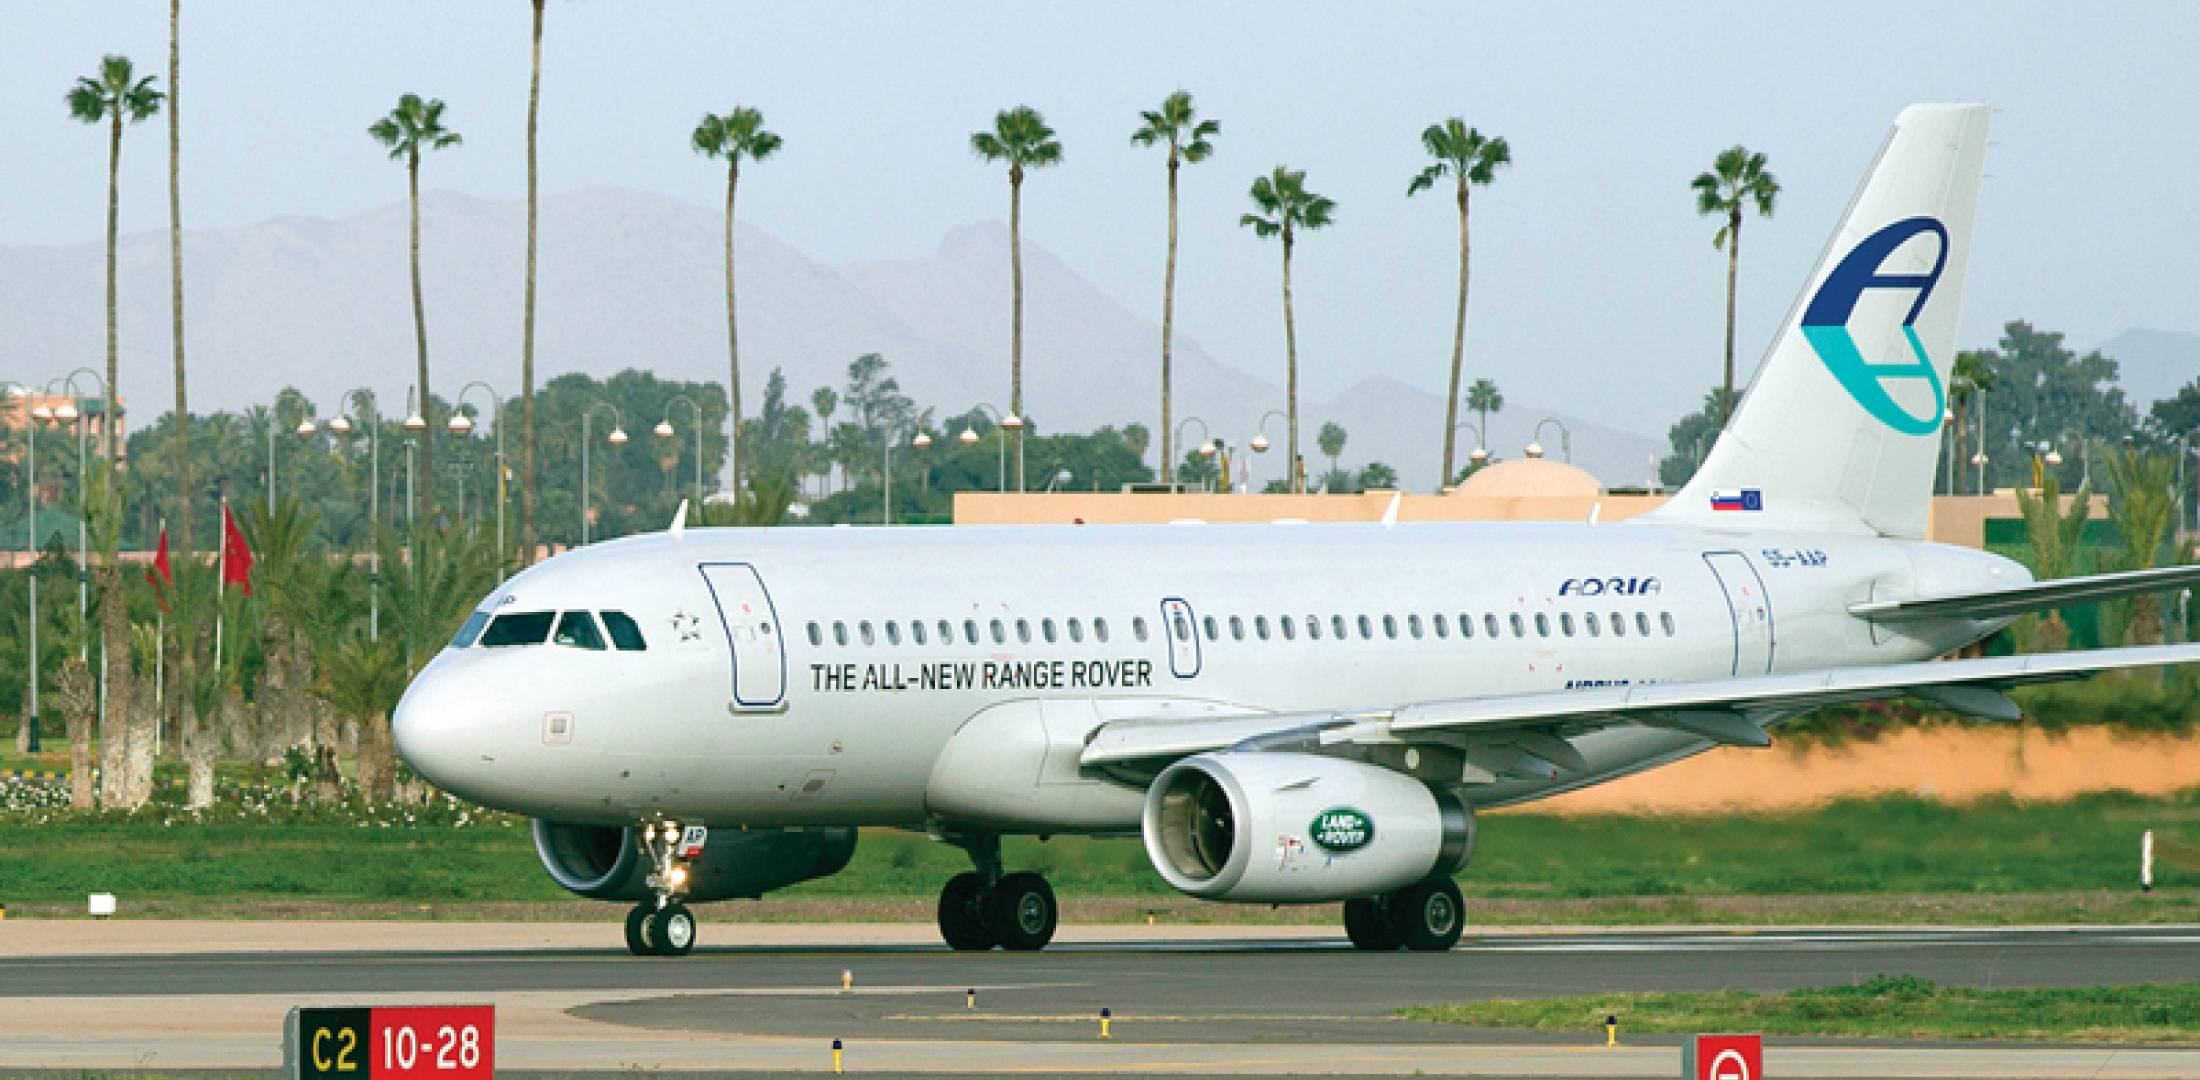 Air Partner applied Land Rover branding to the  wet-leased A319s it used for the car maker's flights.